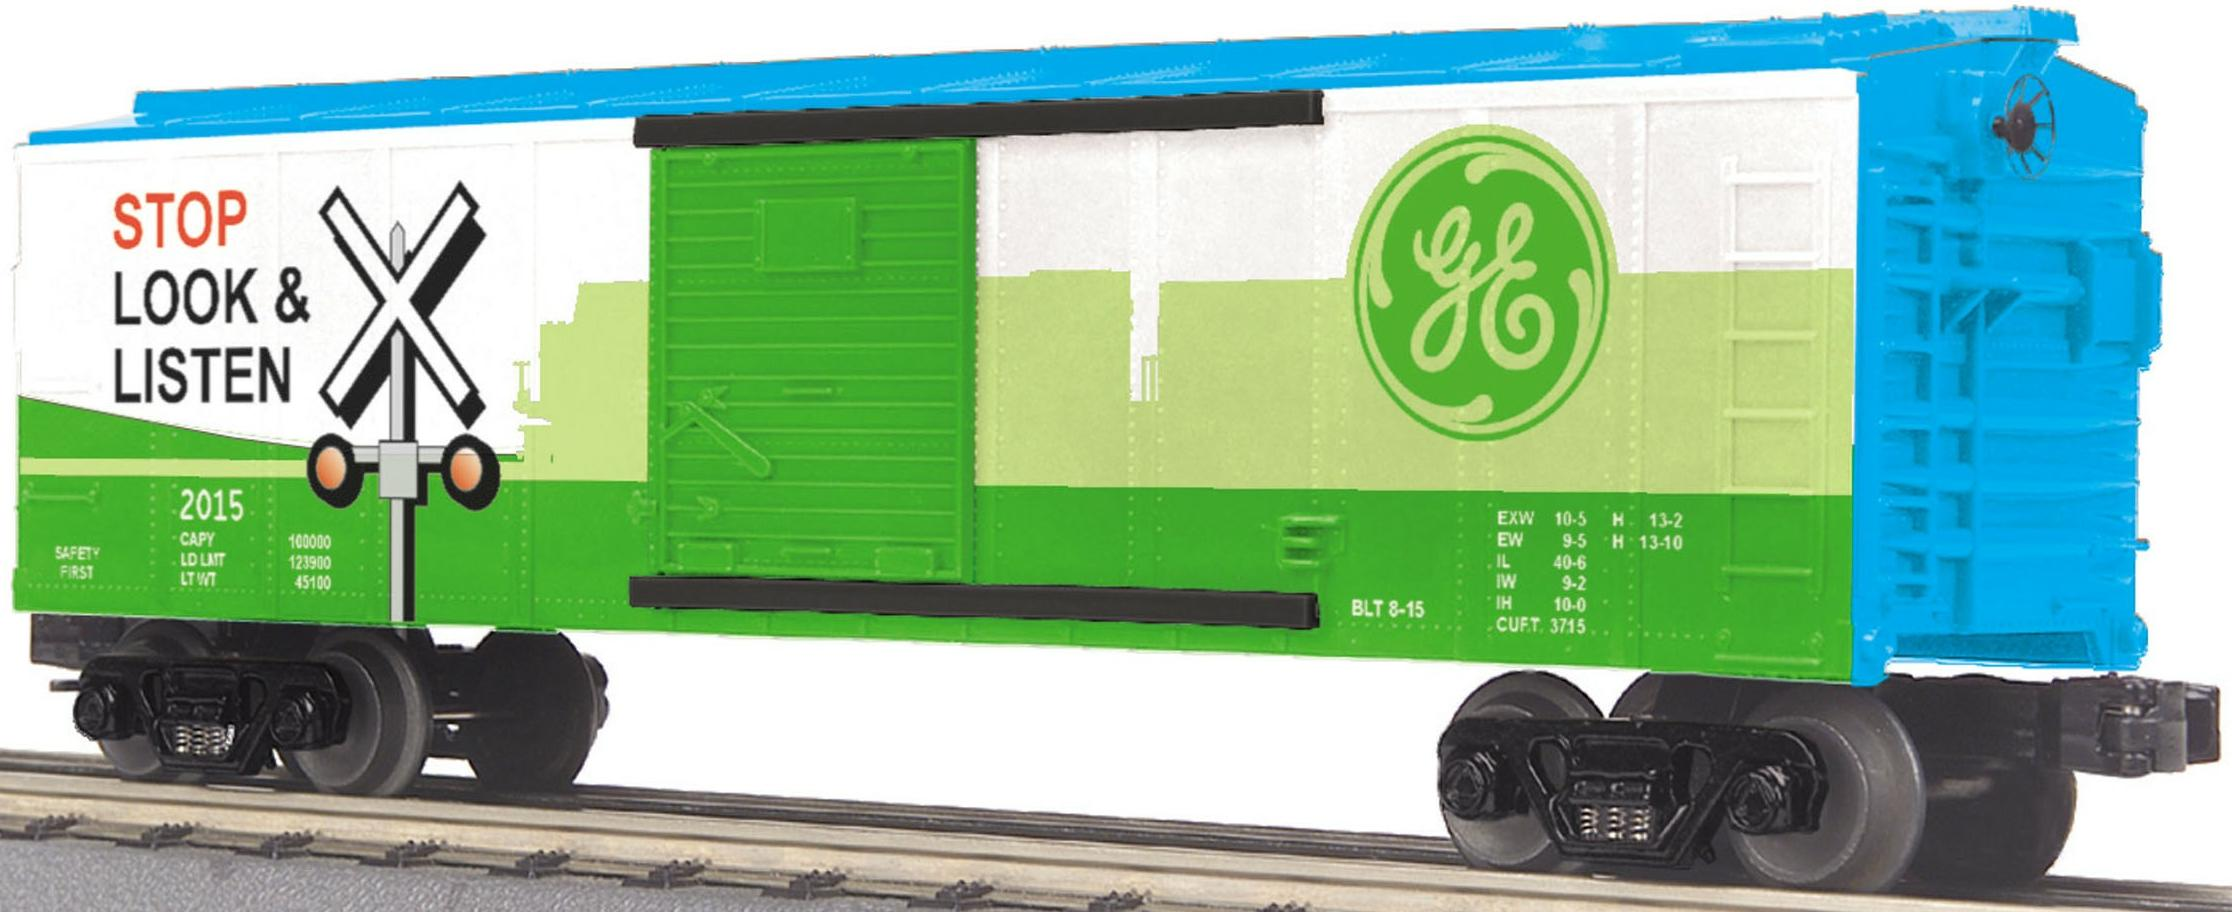 General Electric Evolution (GEVO) Box Car w/Blinking LEDs image